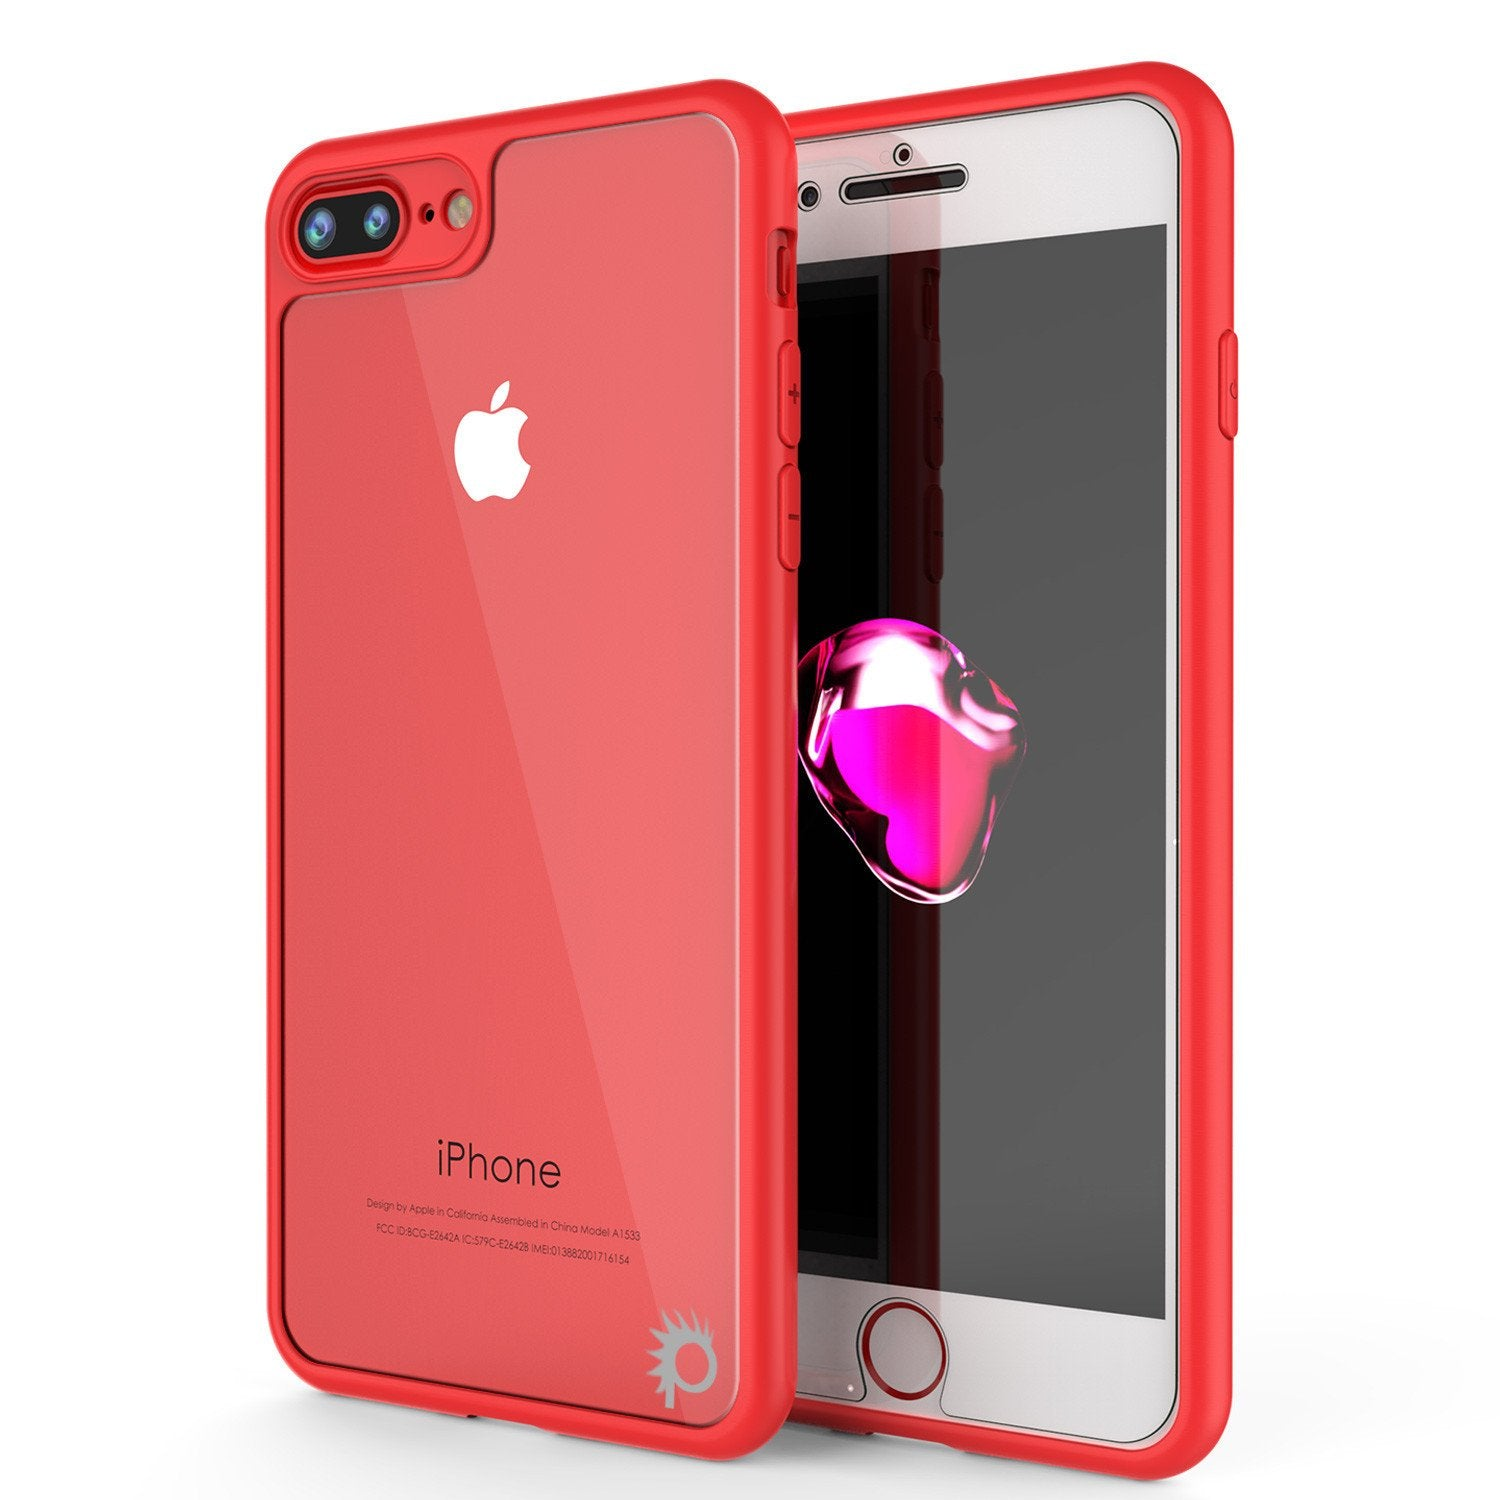 iPhone 7 PLUS Case, Punkcase [MASK Series] [RED] Full Body Hybrid Dual Layer TPU Cover [Clear Back] [Non Slip] [Ultra Thin Fit] W/ protective Tempered Glass Screen Protector for Apple iPhone 7s PLUS